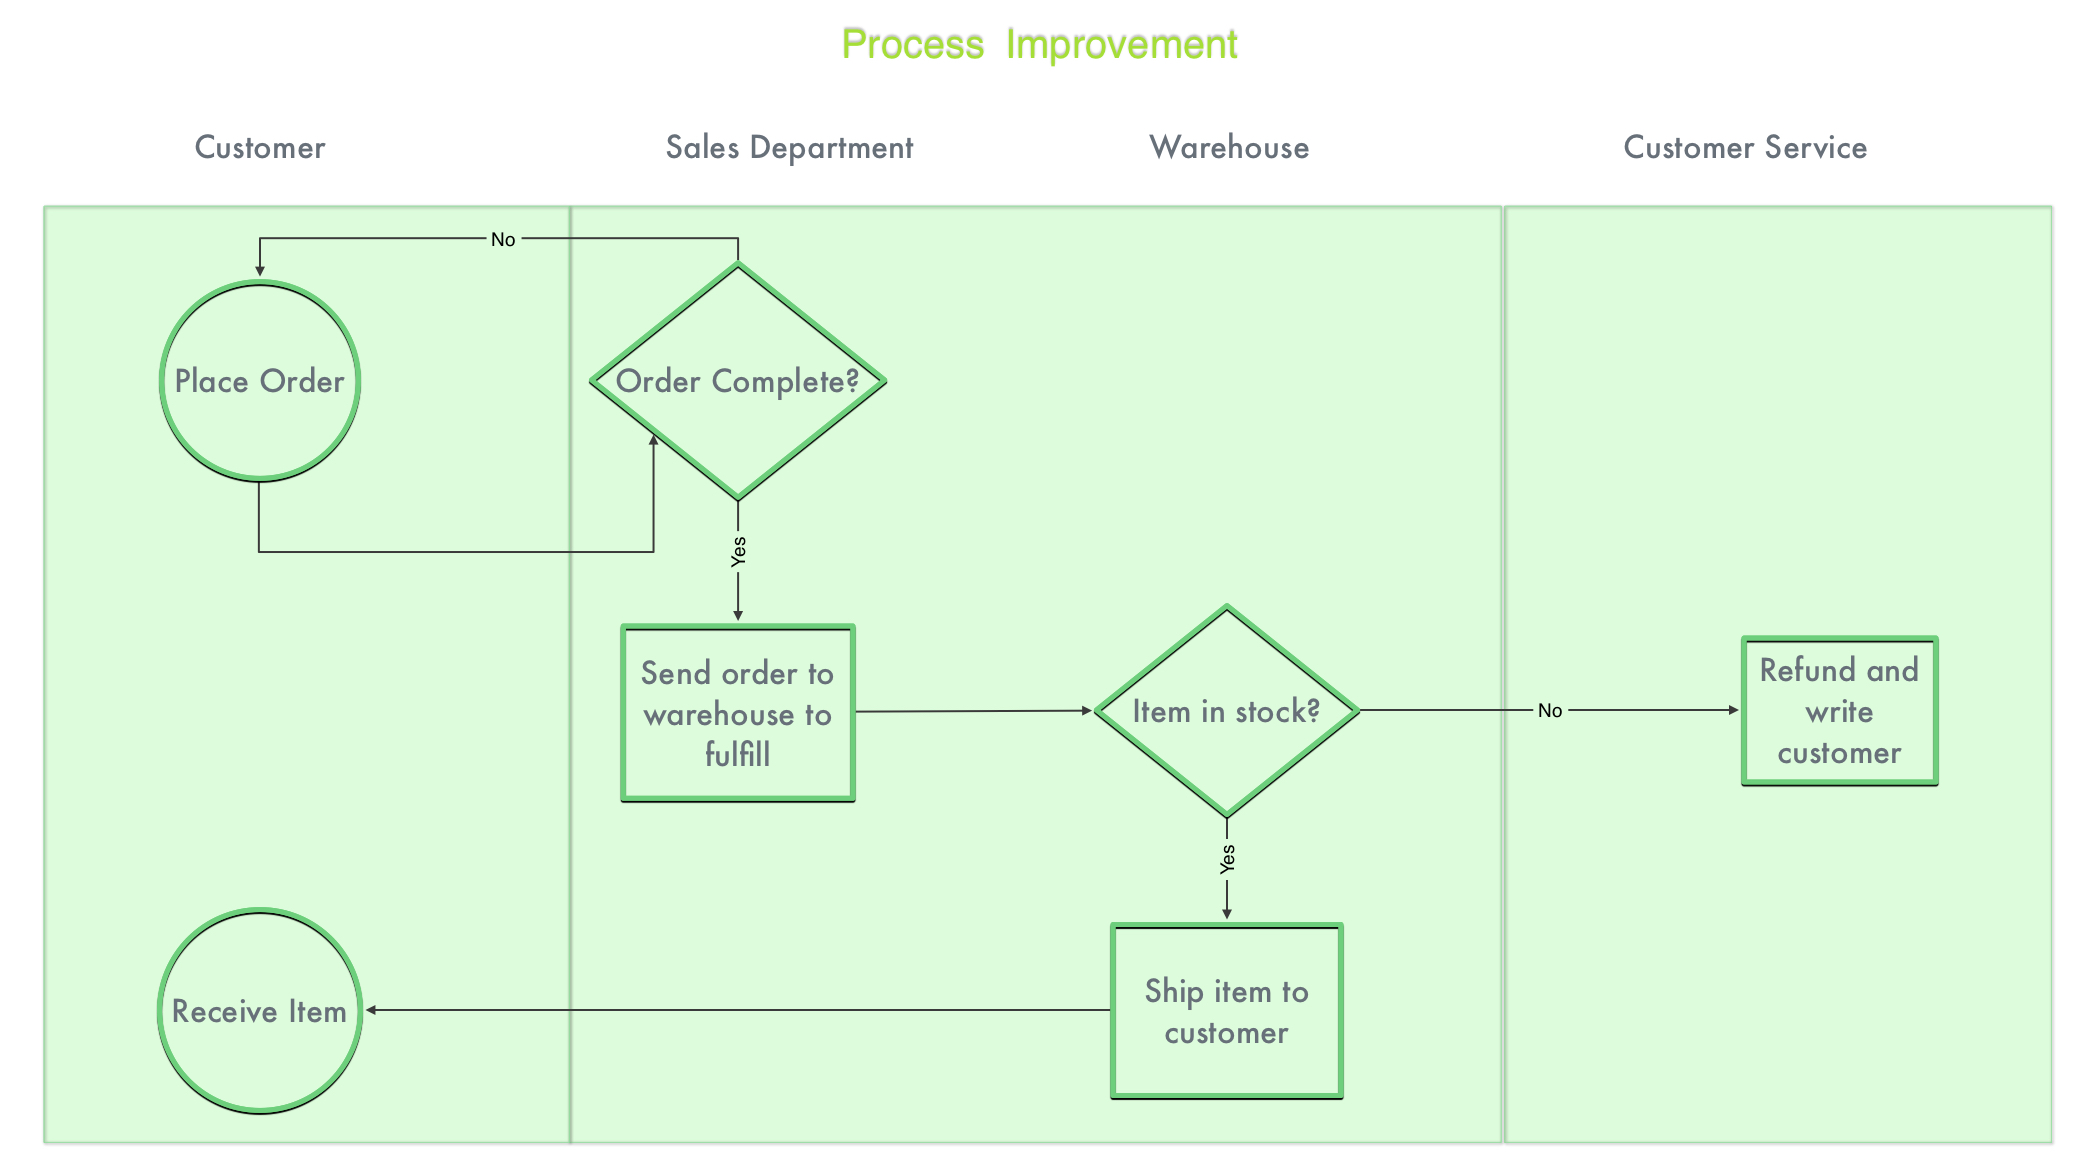 Process-improvement-tqm-diagram-grafio